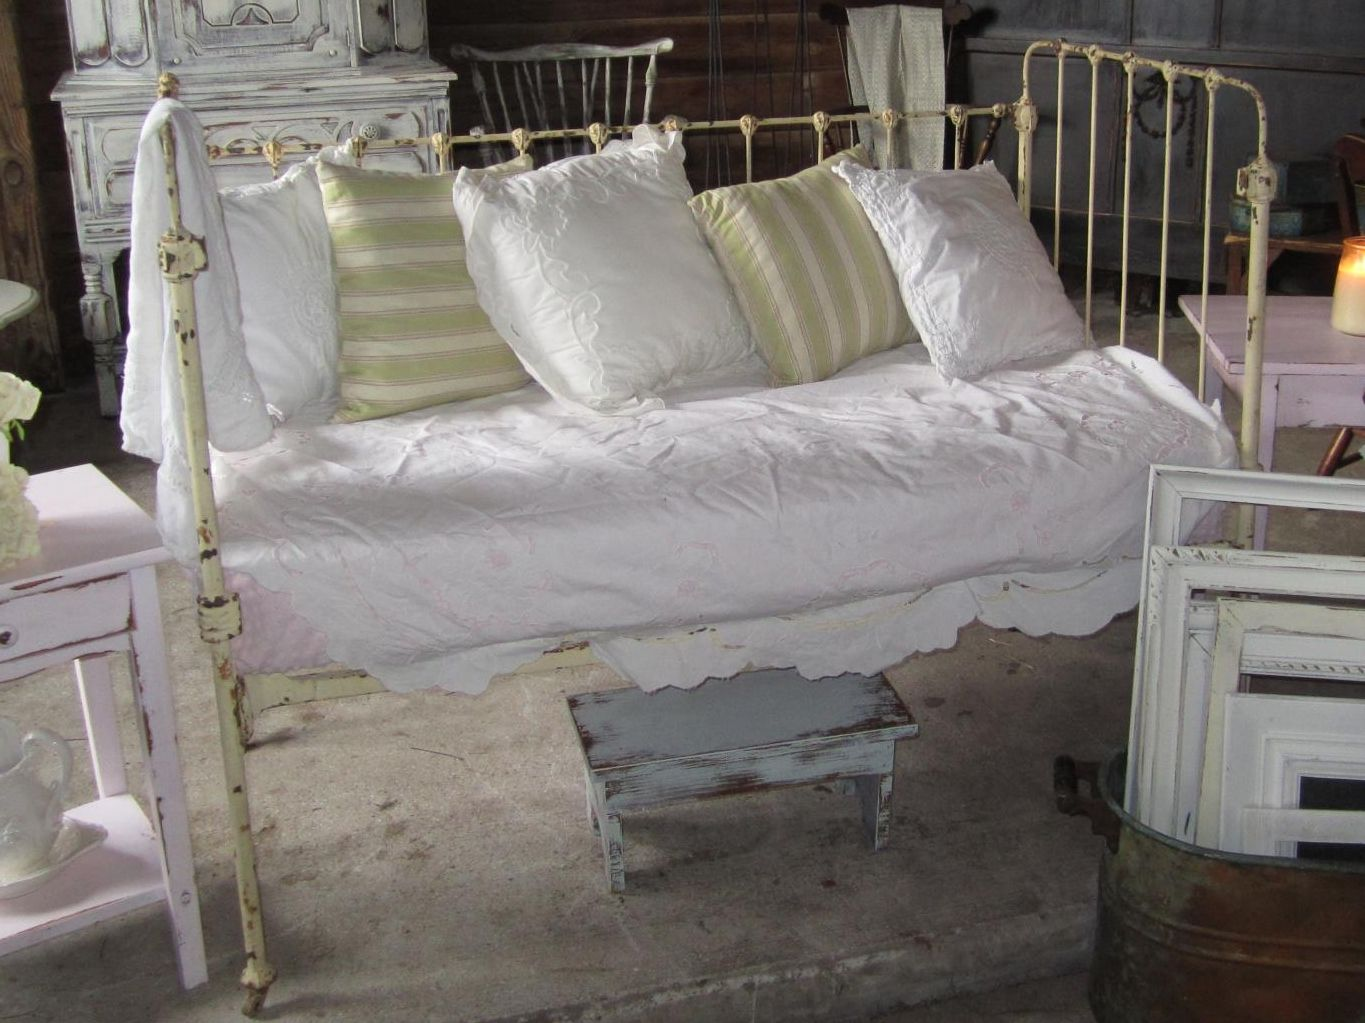 Iron crib for sale craigslist - Antique Iron Crib Turned Daybed Includes Mattress All 4 Sides Of The Crib And